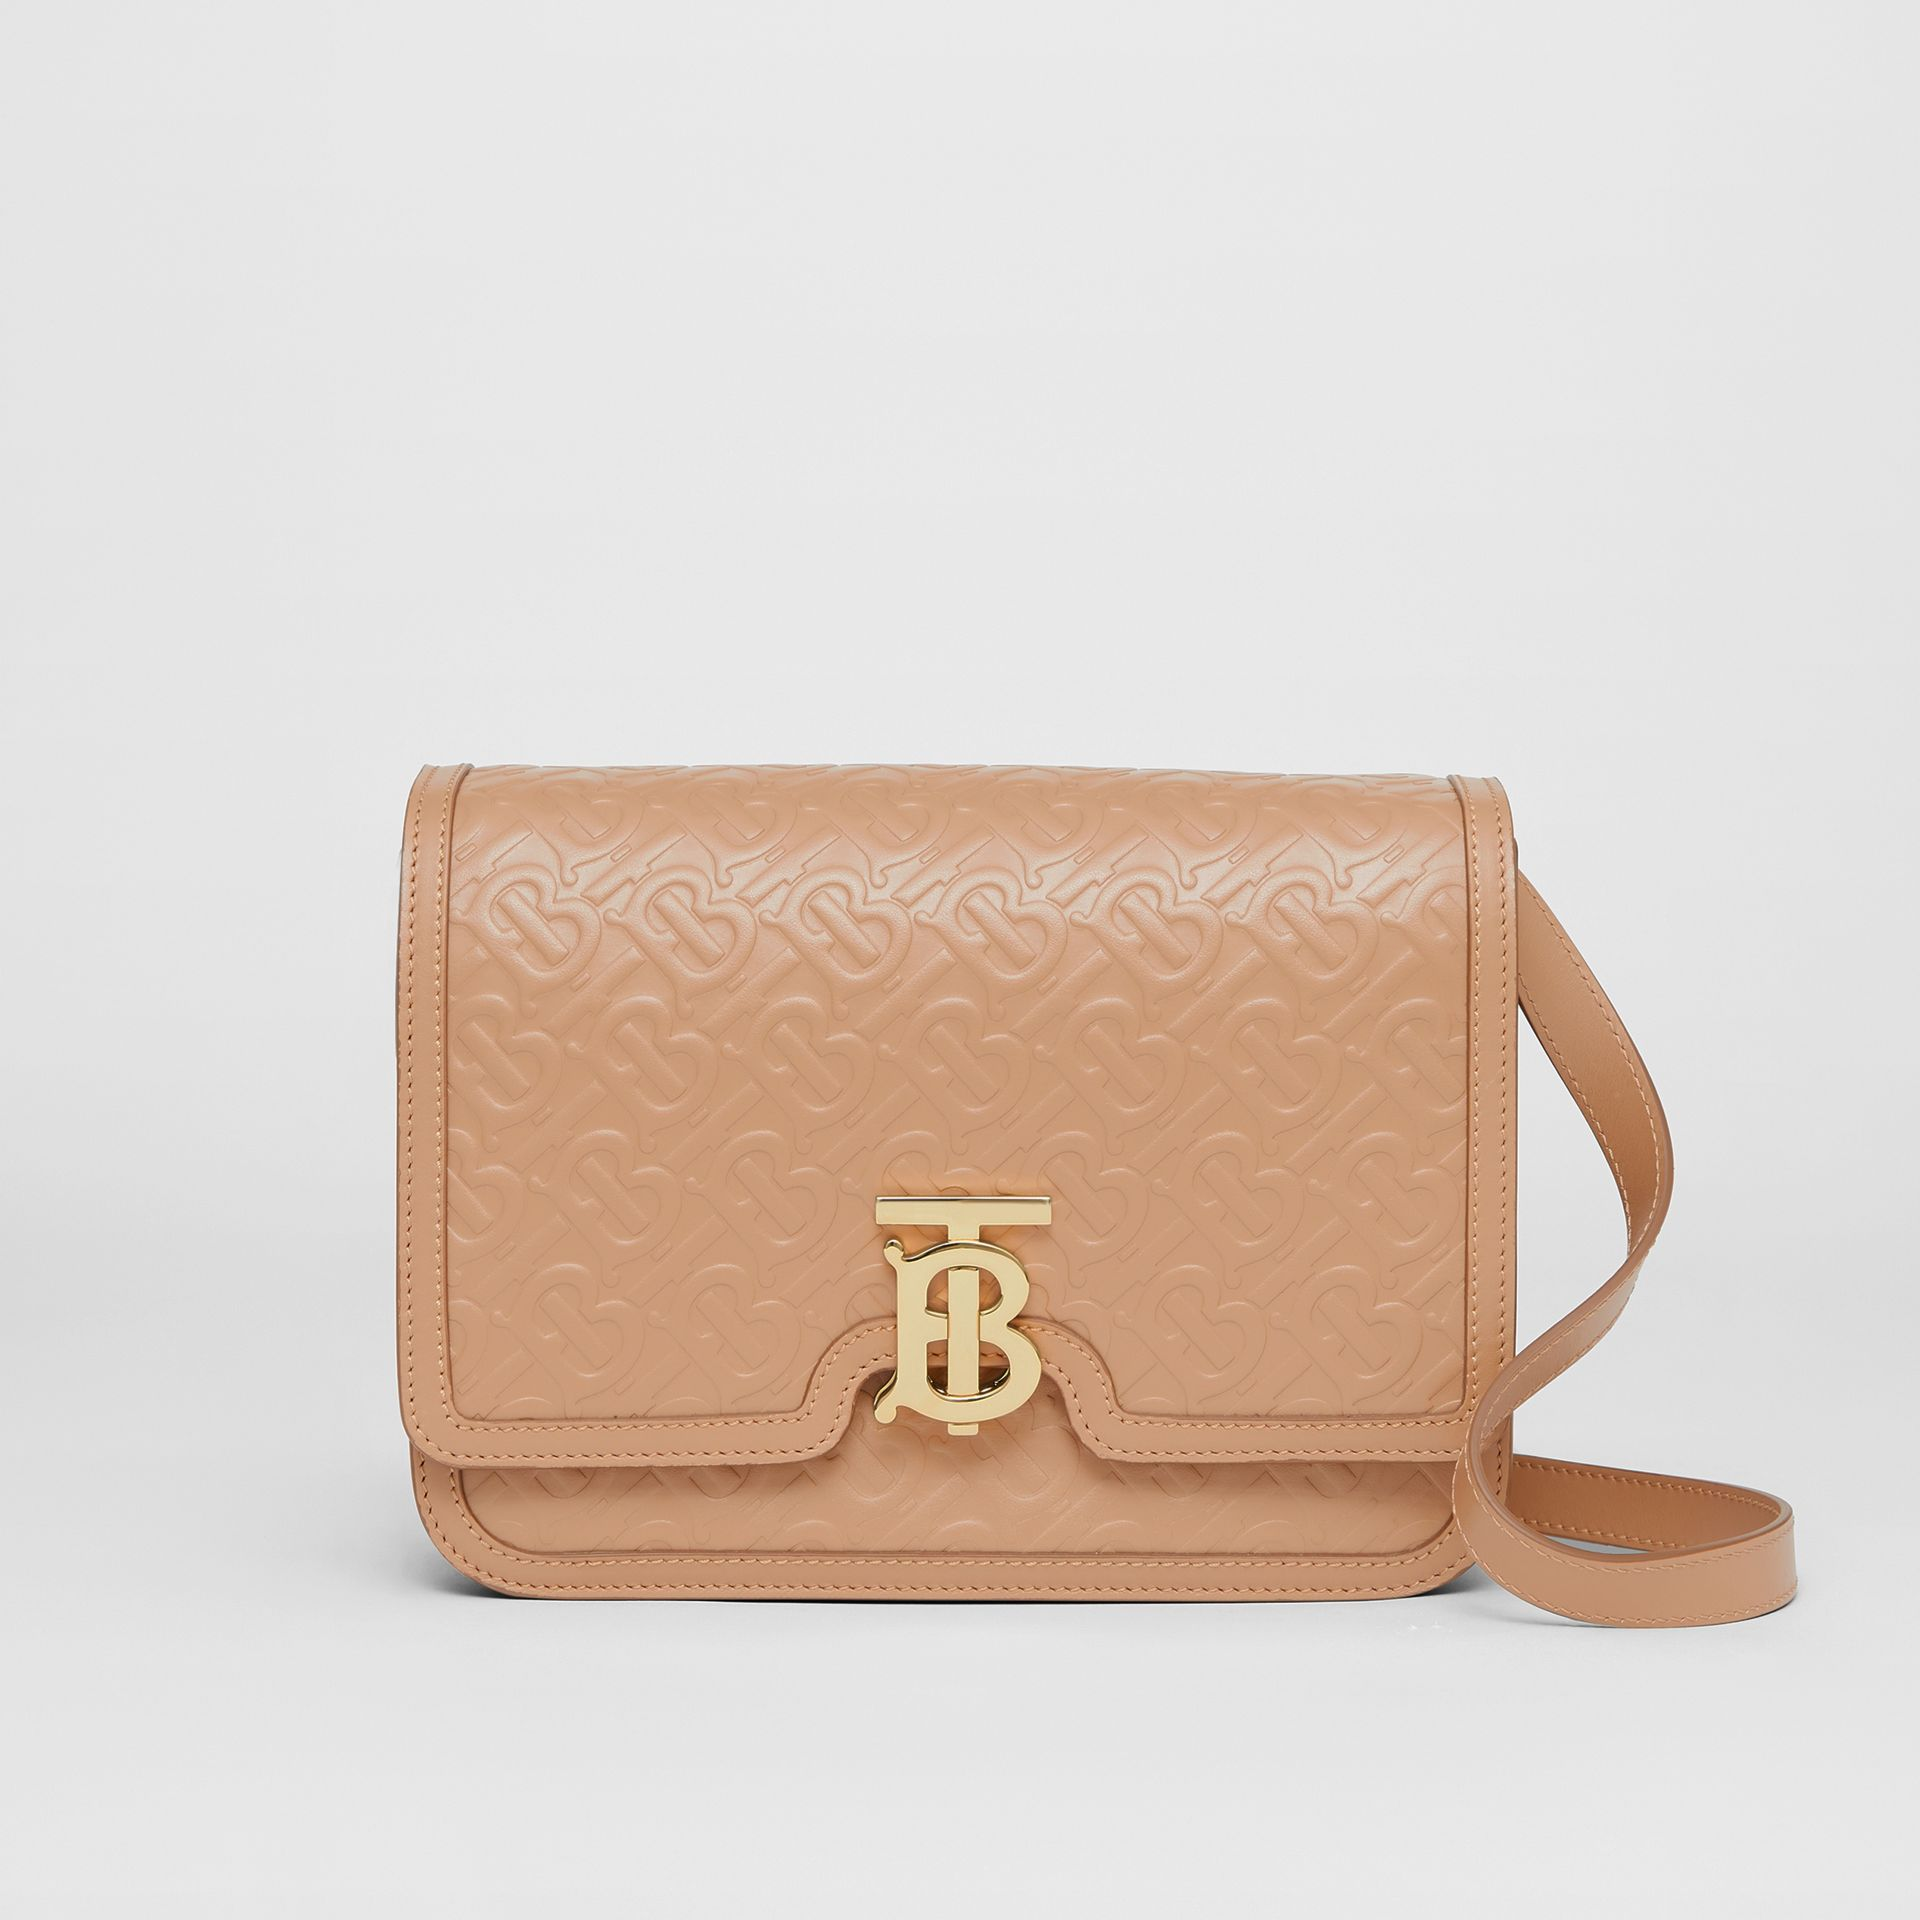 Medium Monogram Leather TB Bag in Light Camel - Women | Burberry Australia - gallery image 0